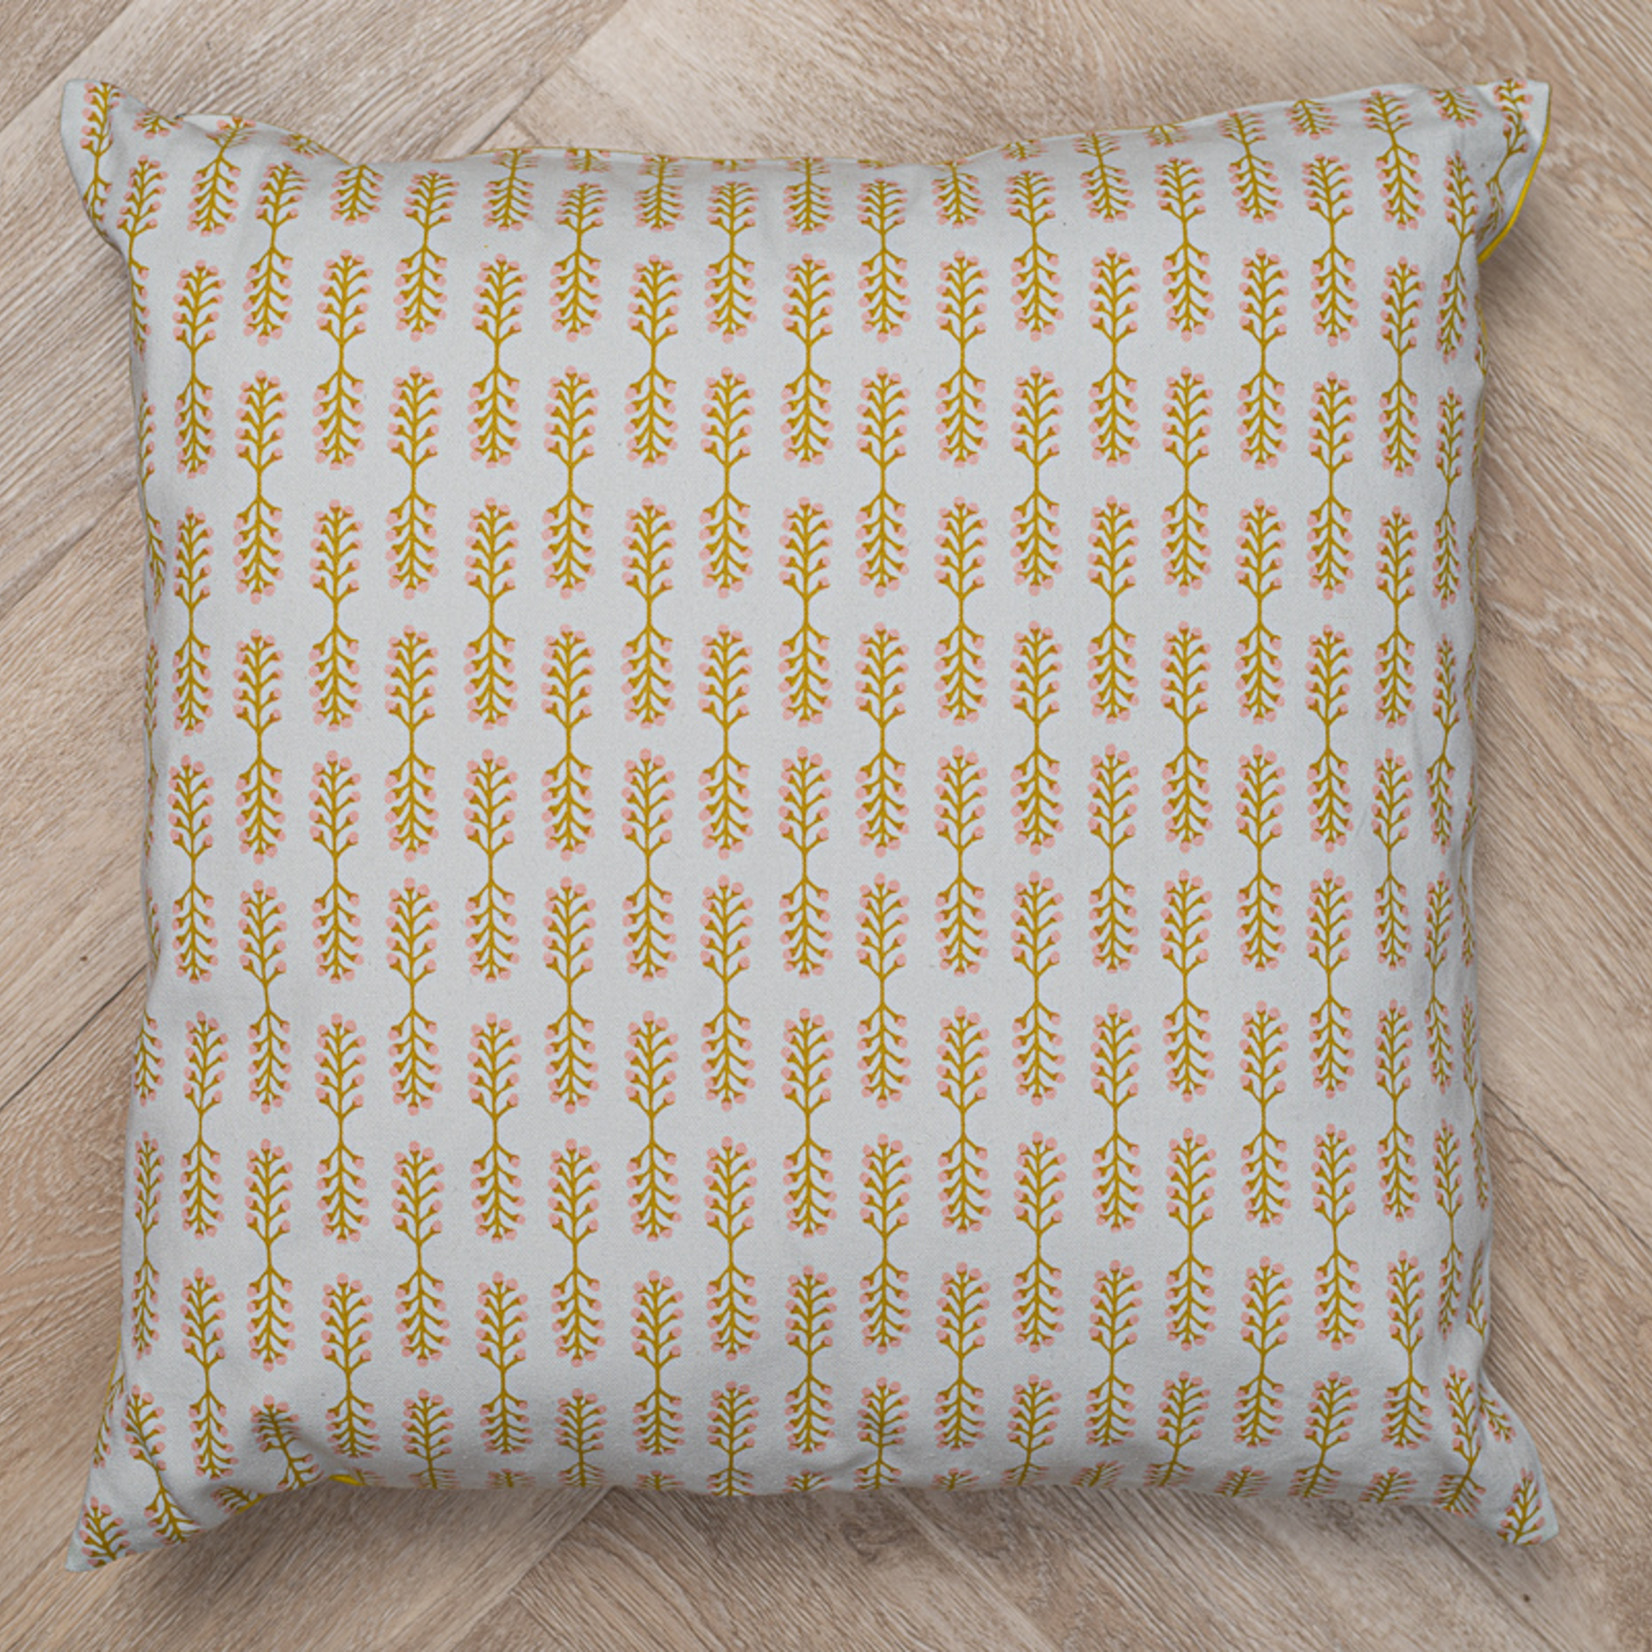 Tallentire House Tallentire House Small Stem Oil Yellow sustainable cushion